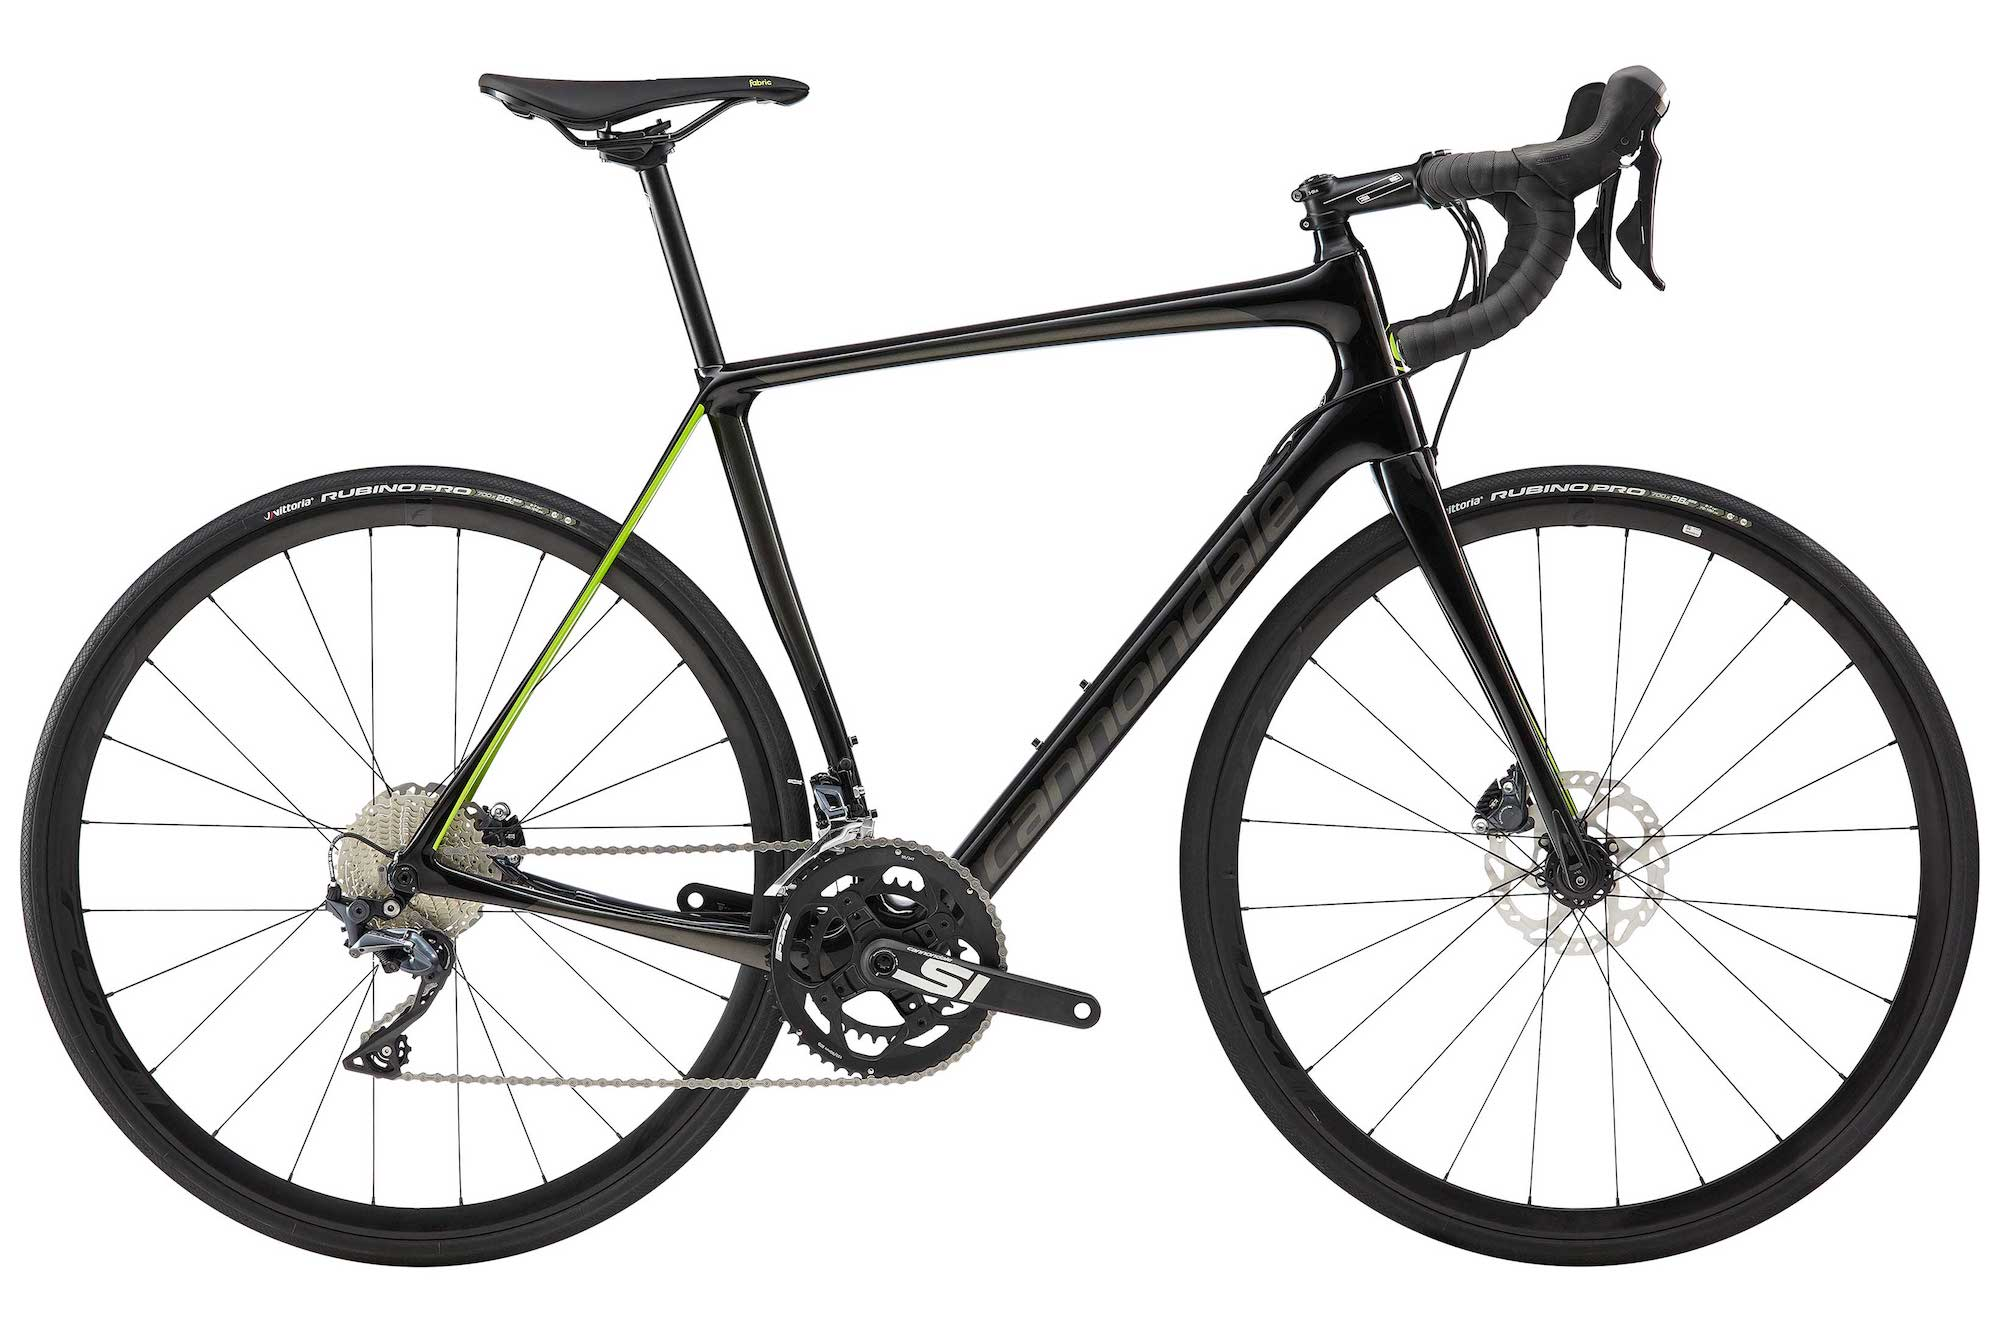 Sunday trading: Save up to £1000 on a Cannondale Synapse plus much more